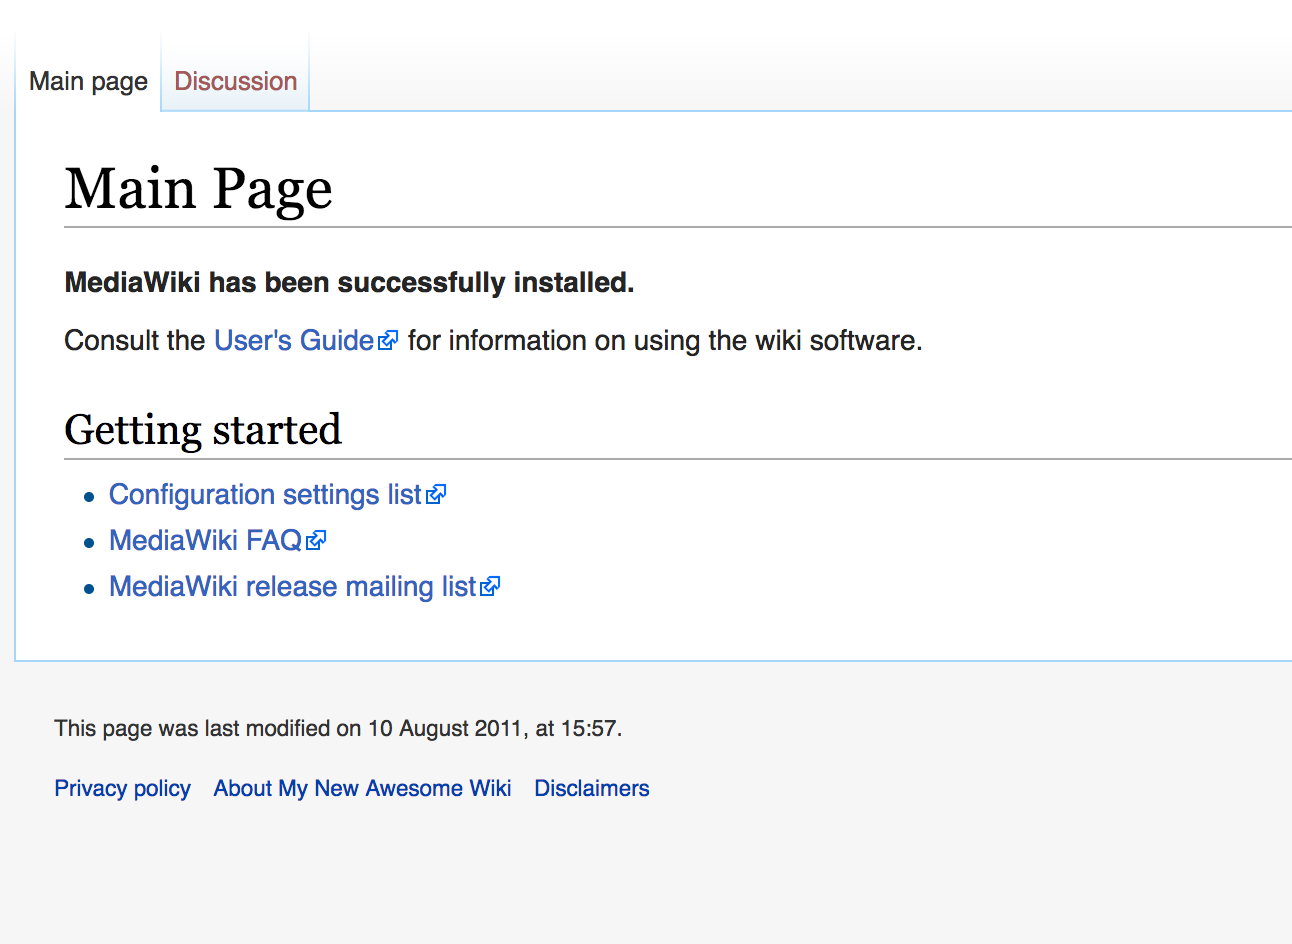 public landing page of new MediaWiki